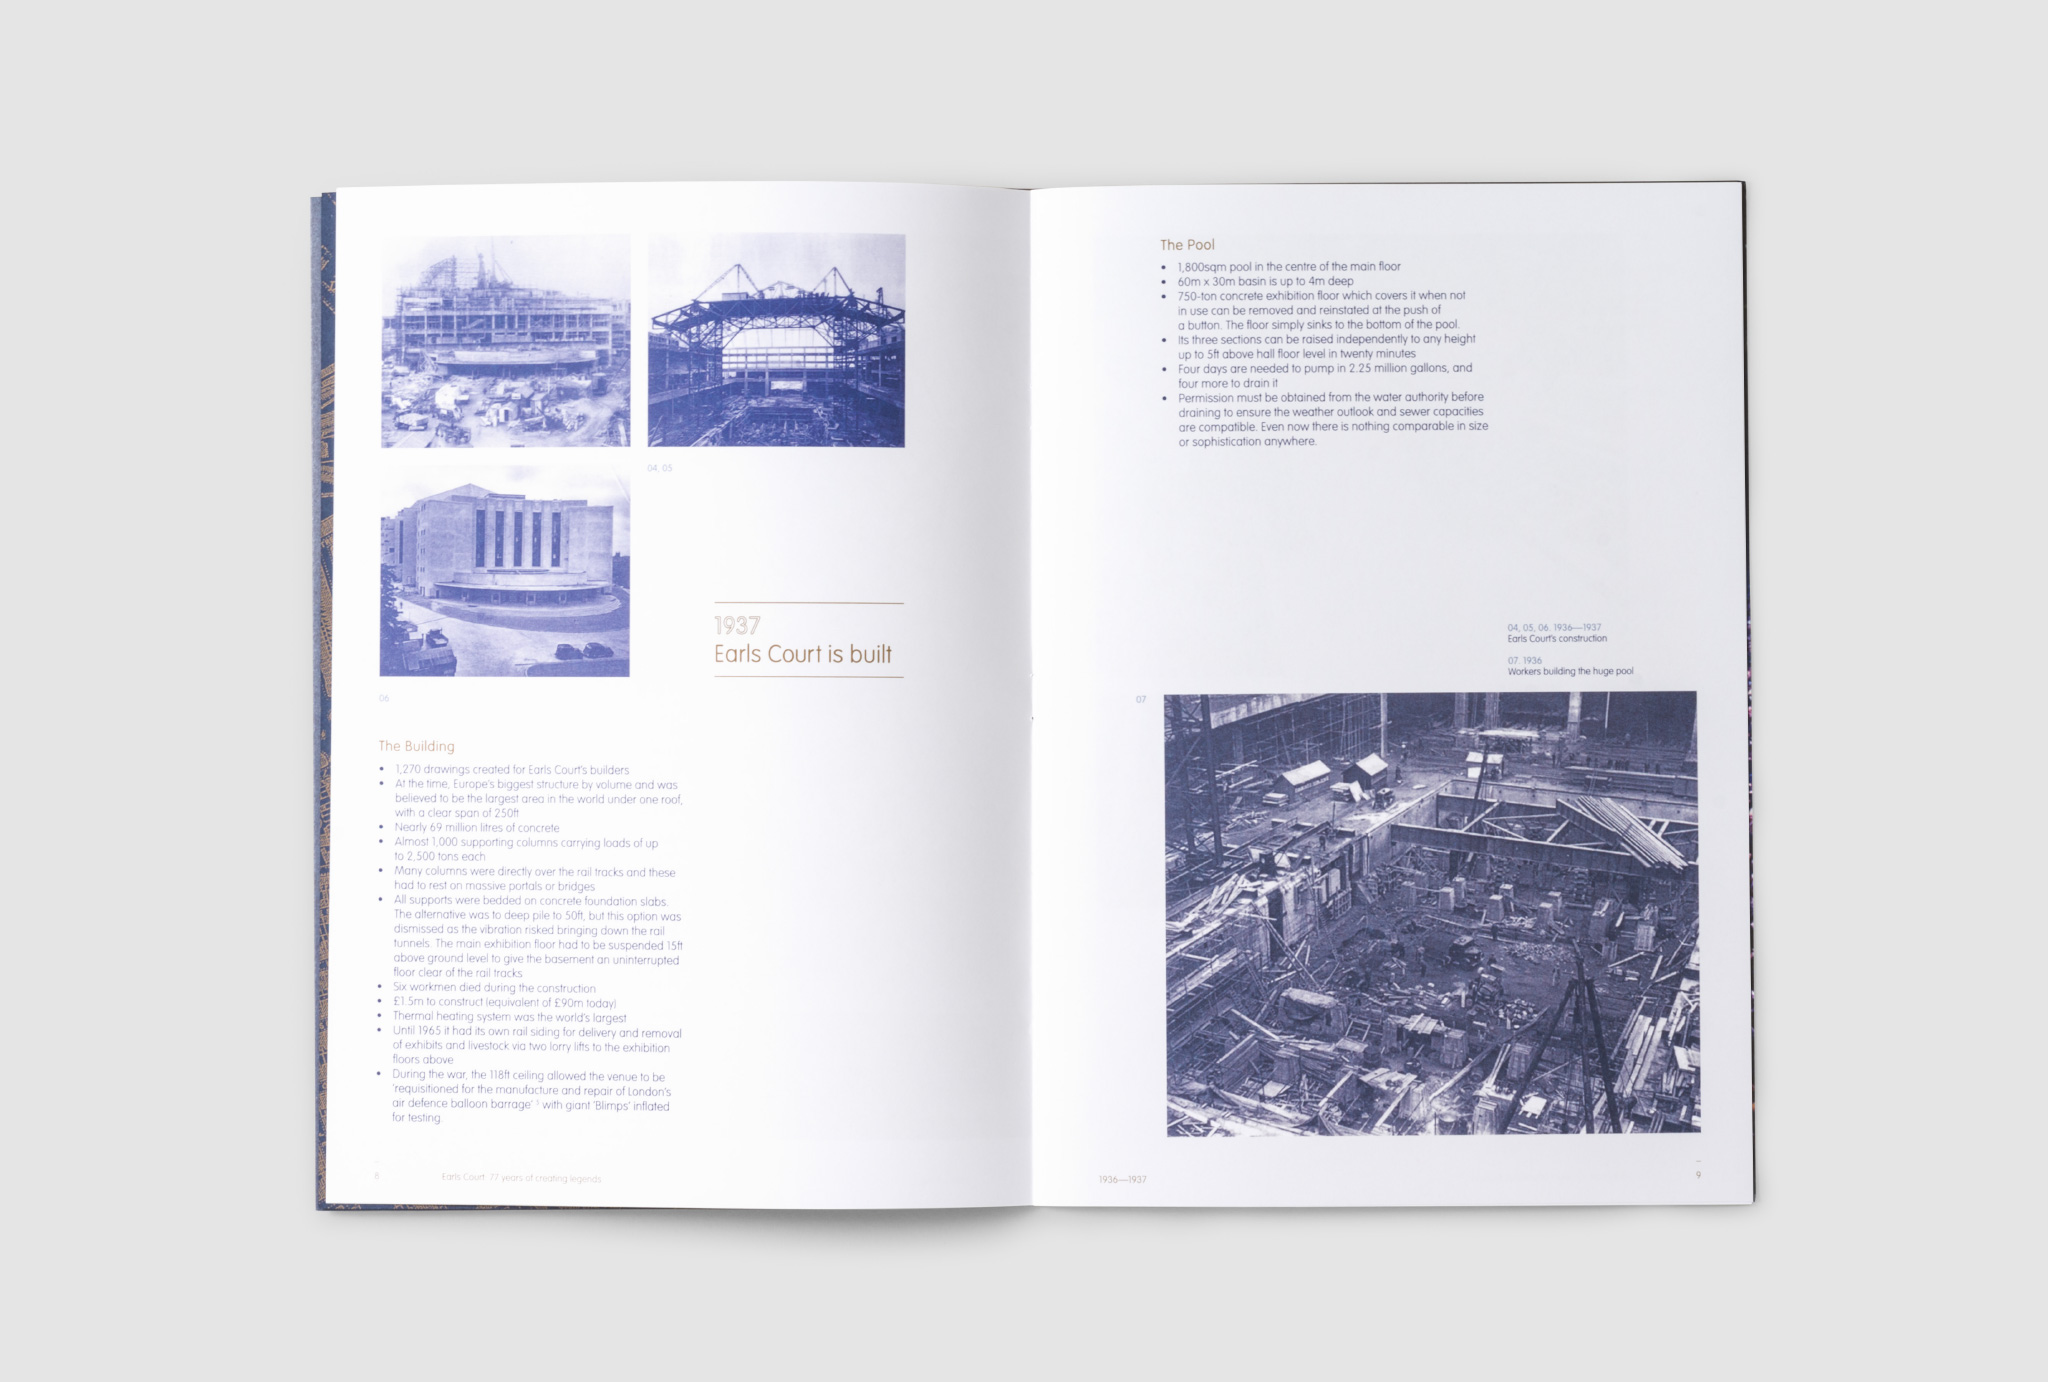 open catalogue, white pages and blue coloured photographs